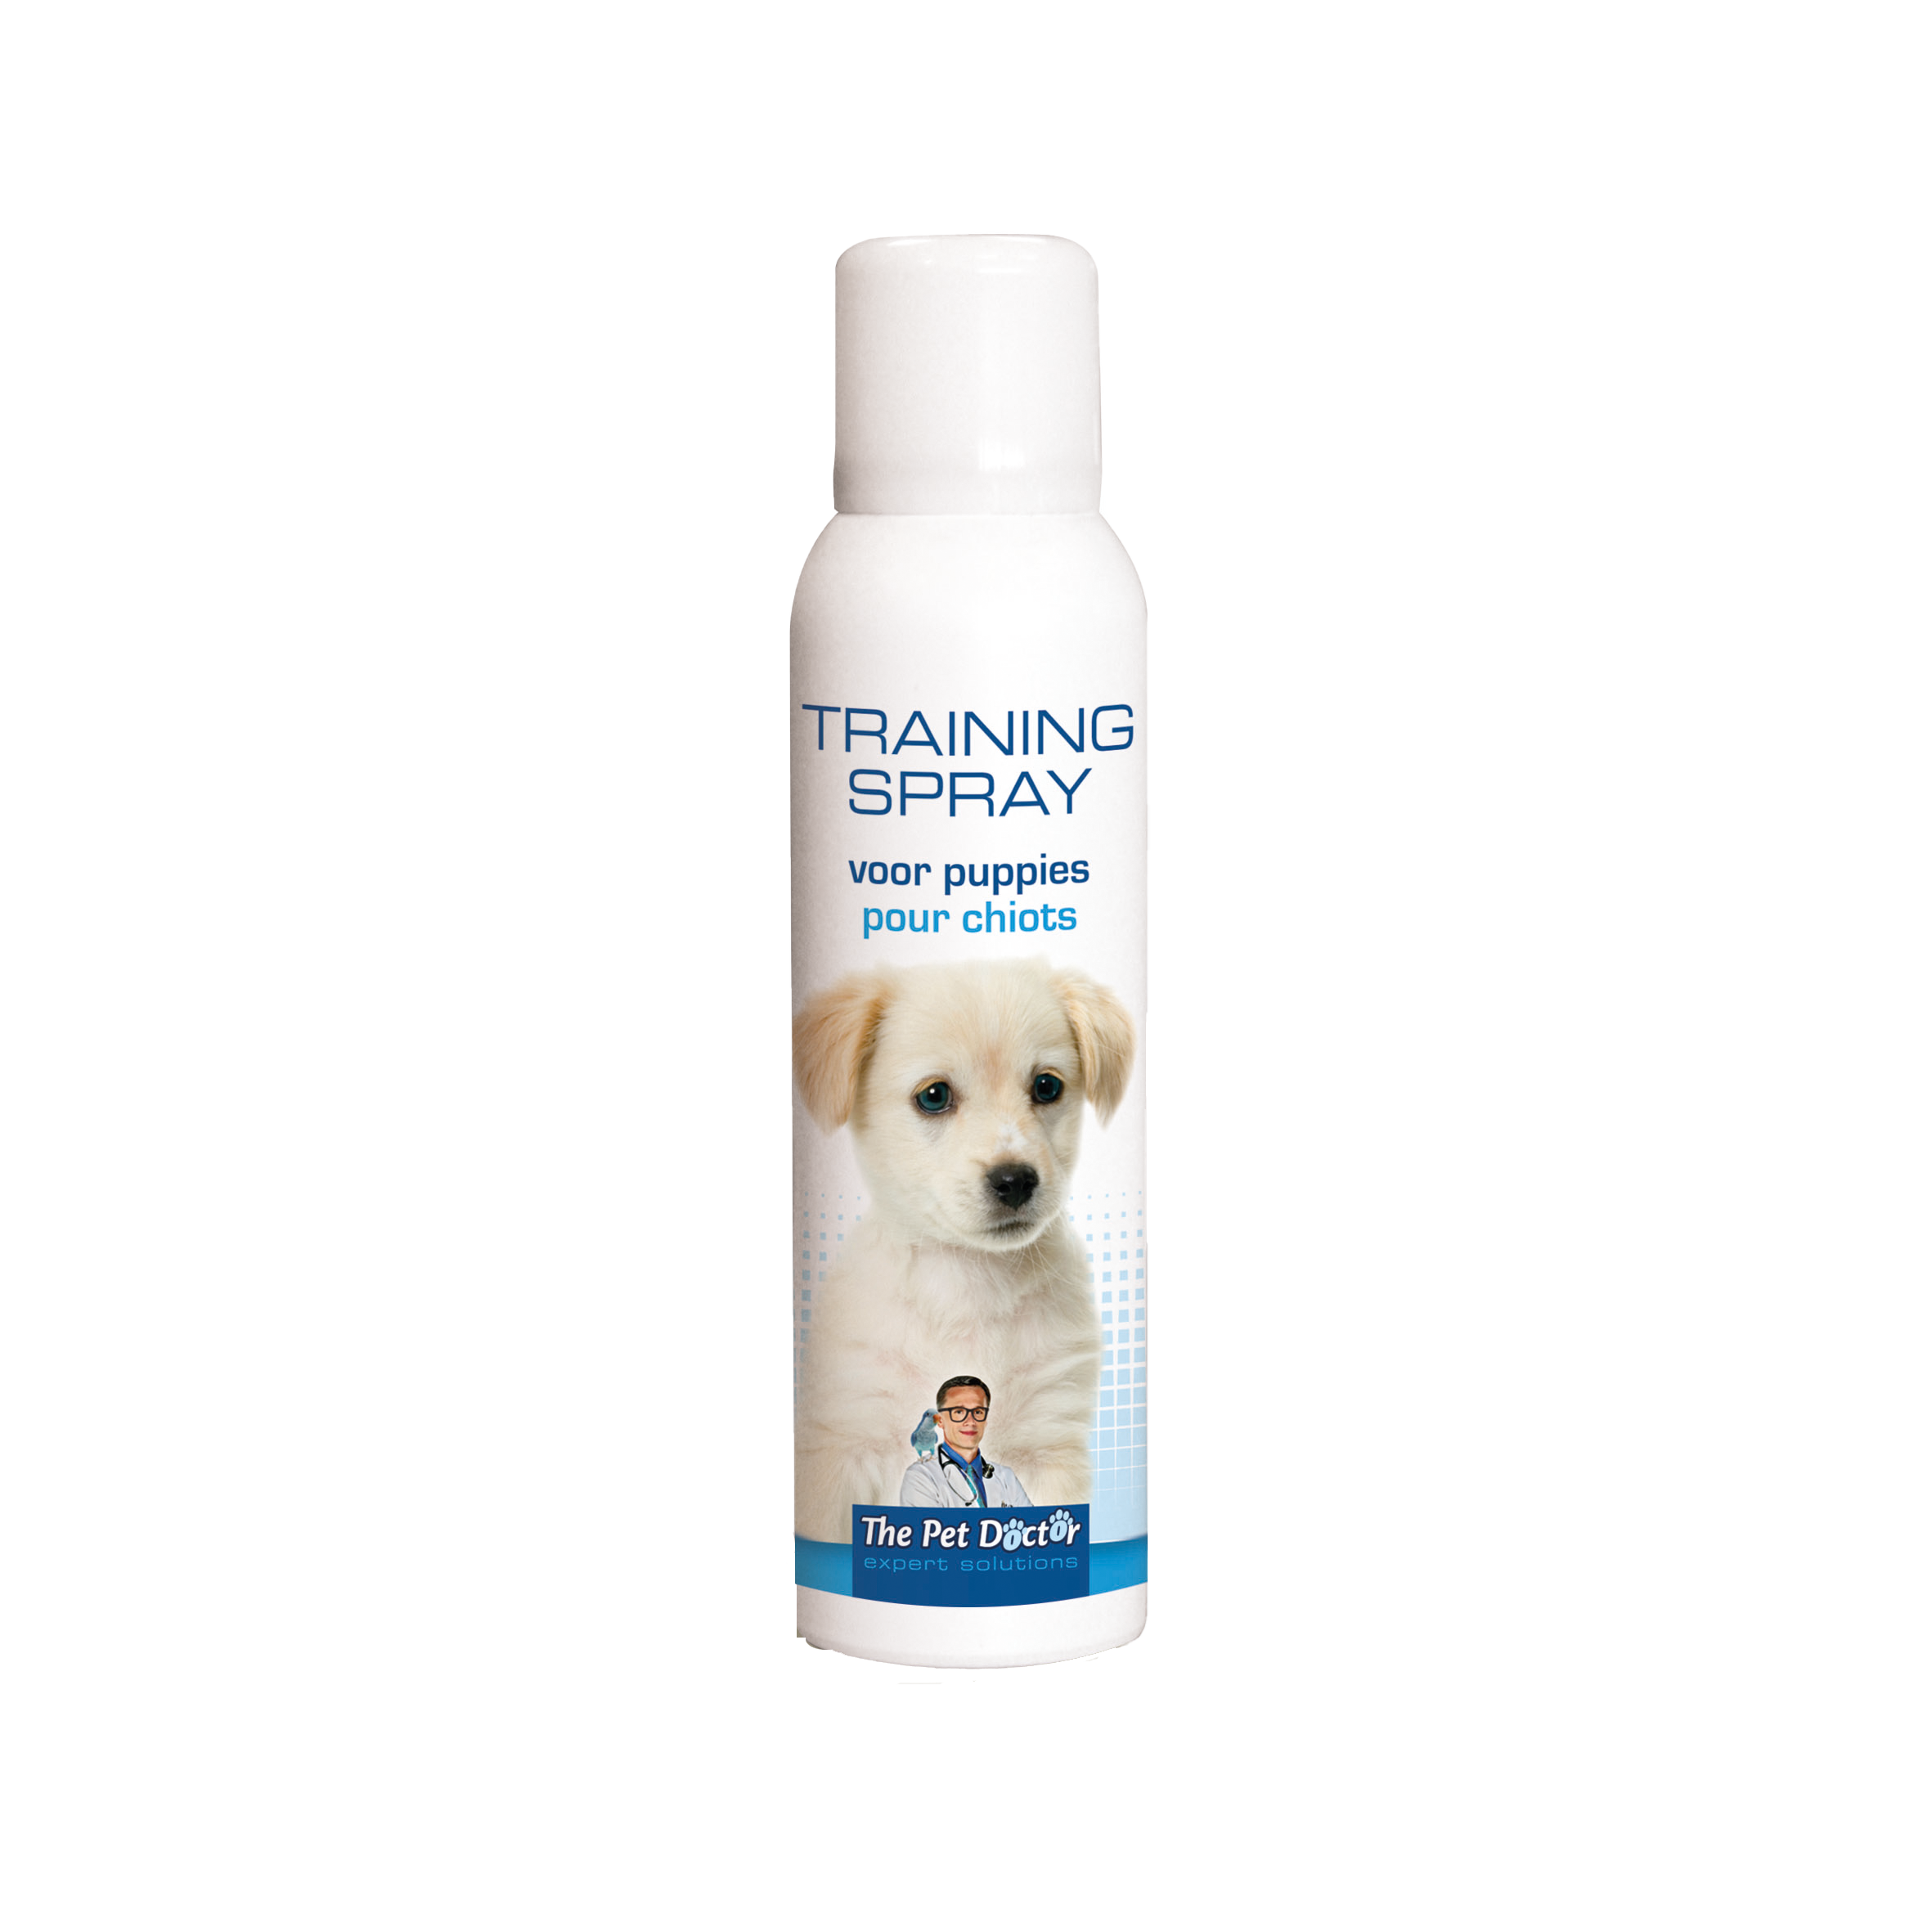 The Pet Doctor Training Spray Chiots 120 ml image